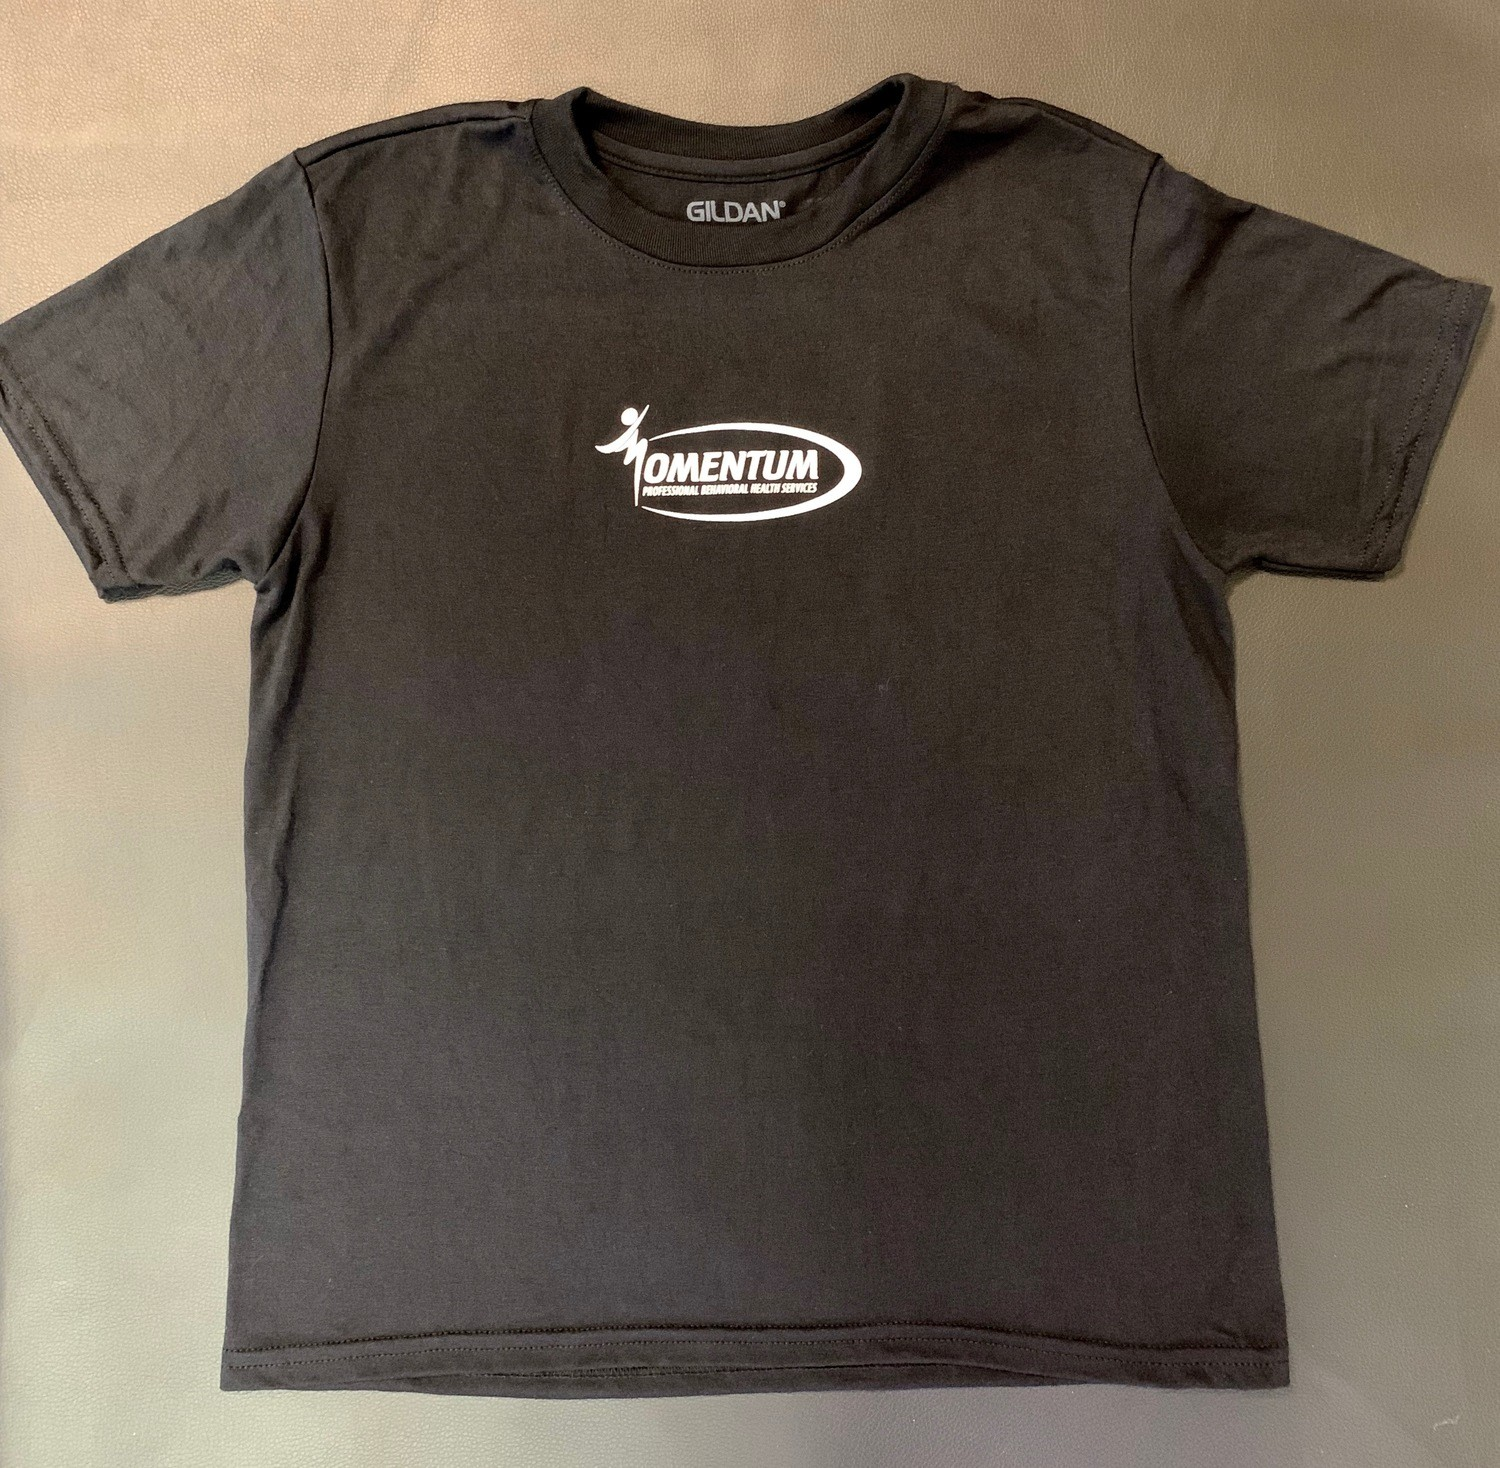 Momentum Children's T-Shirt